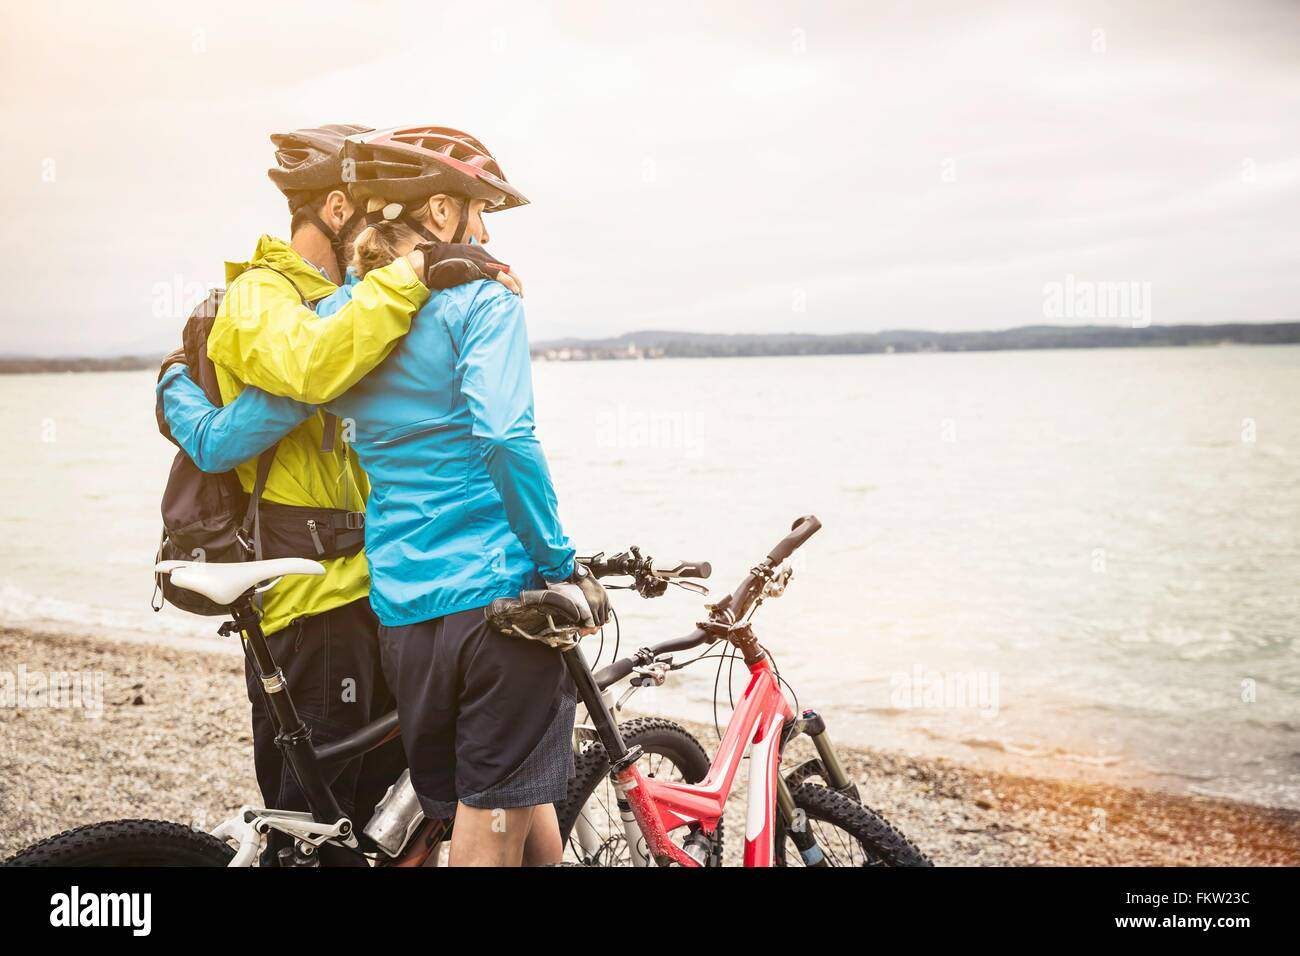 Romantic mountain biking couple looking out from lakeside - Stock Image